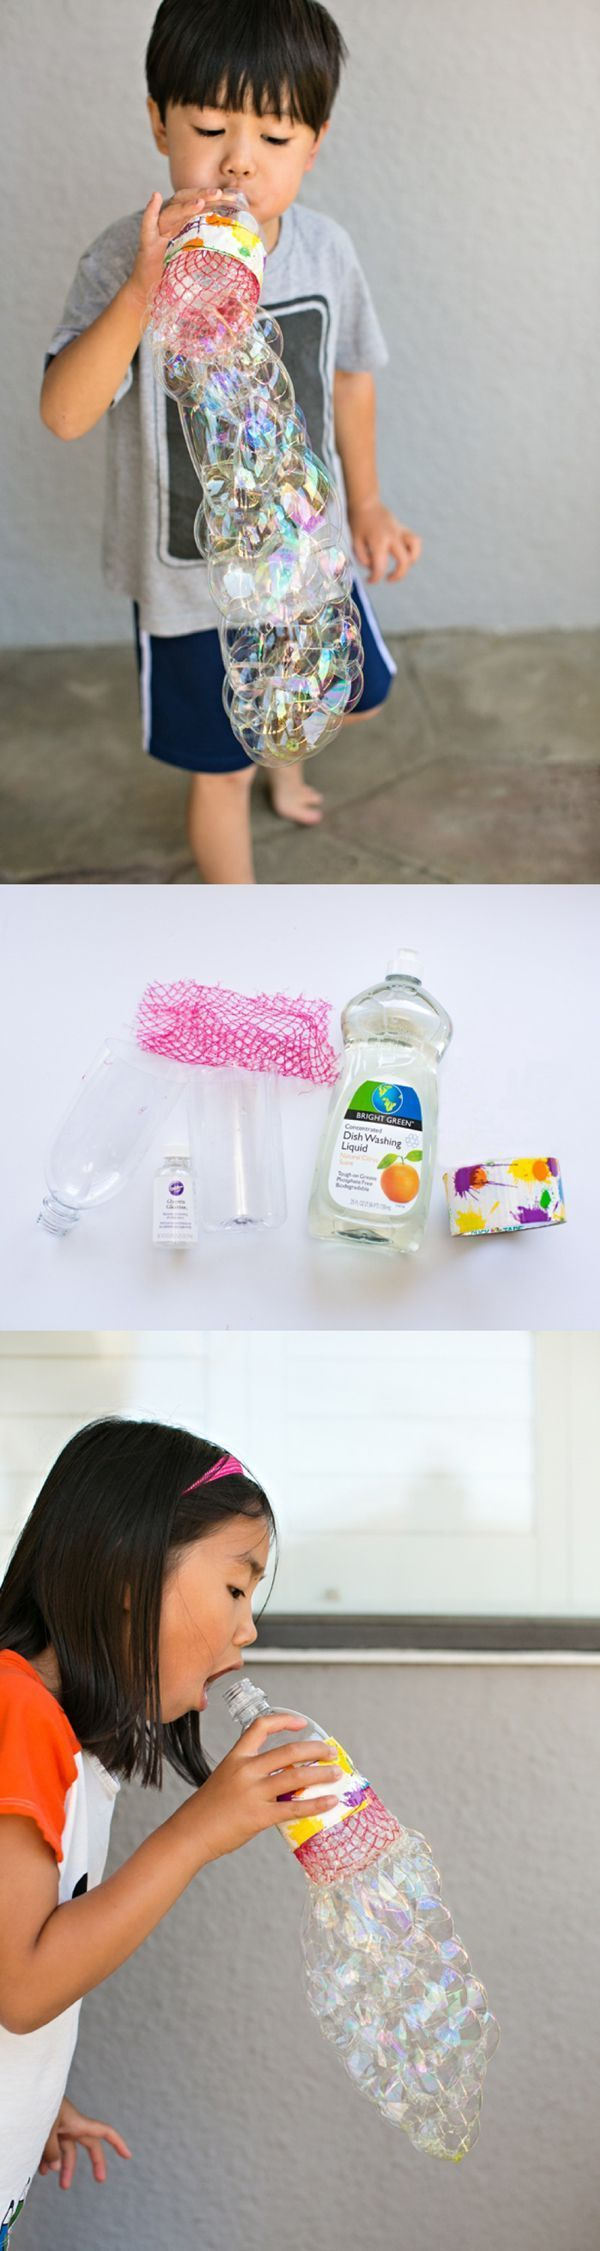 how to make bubble paper